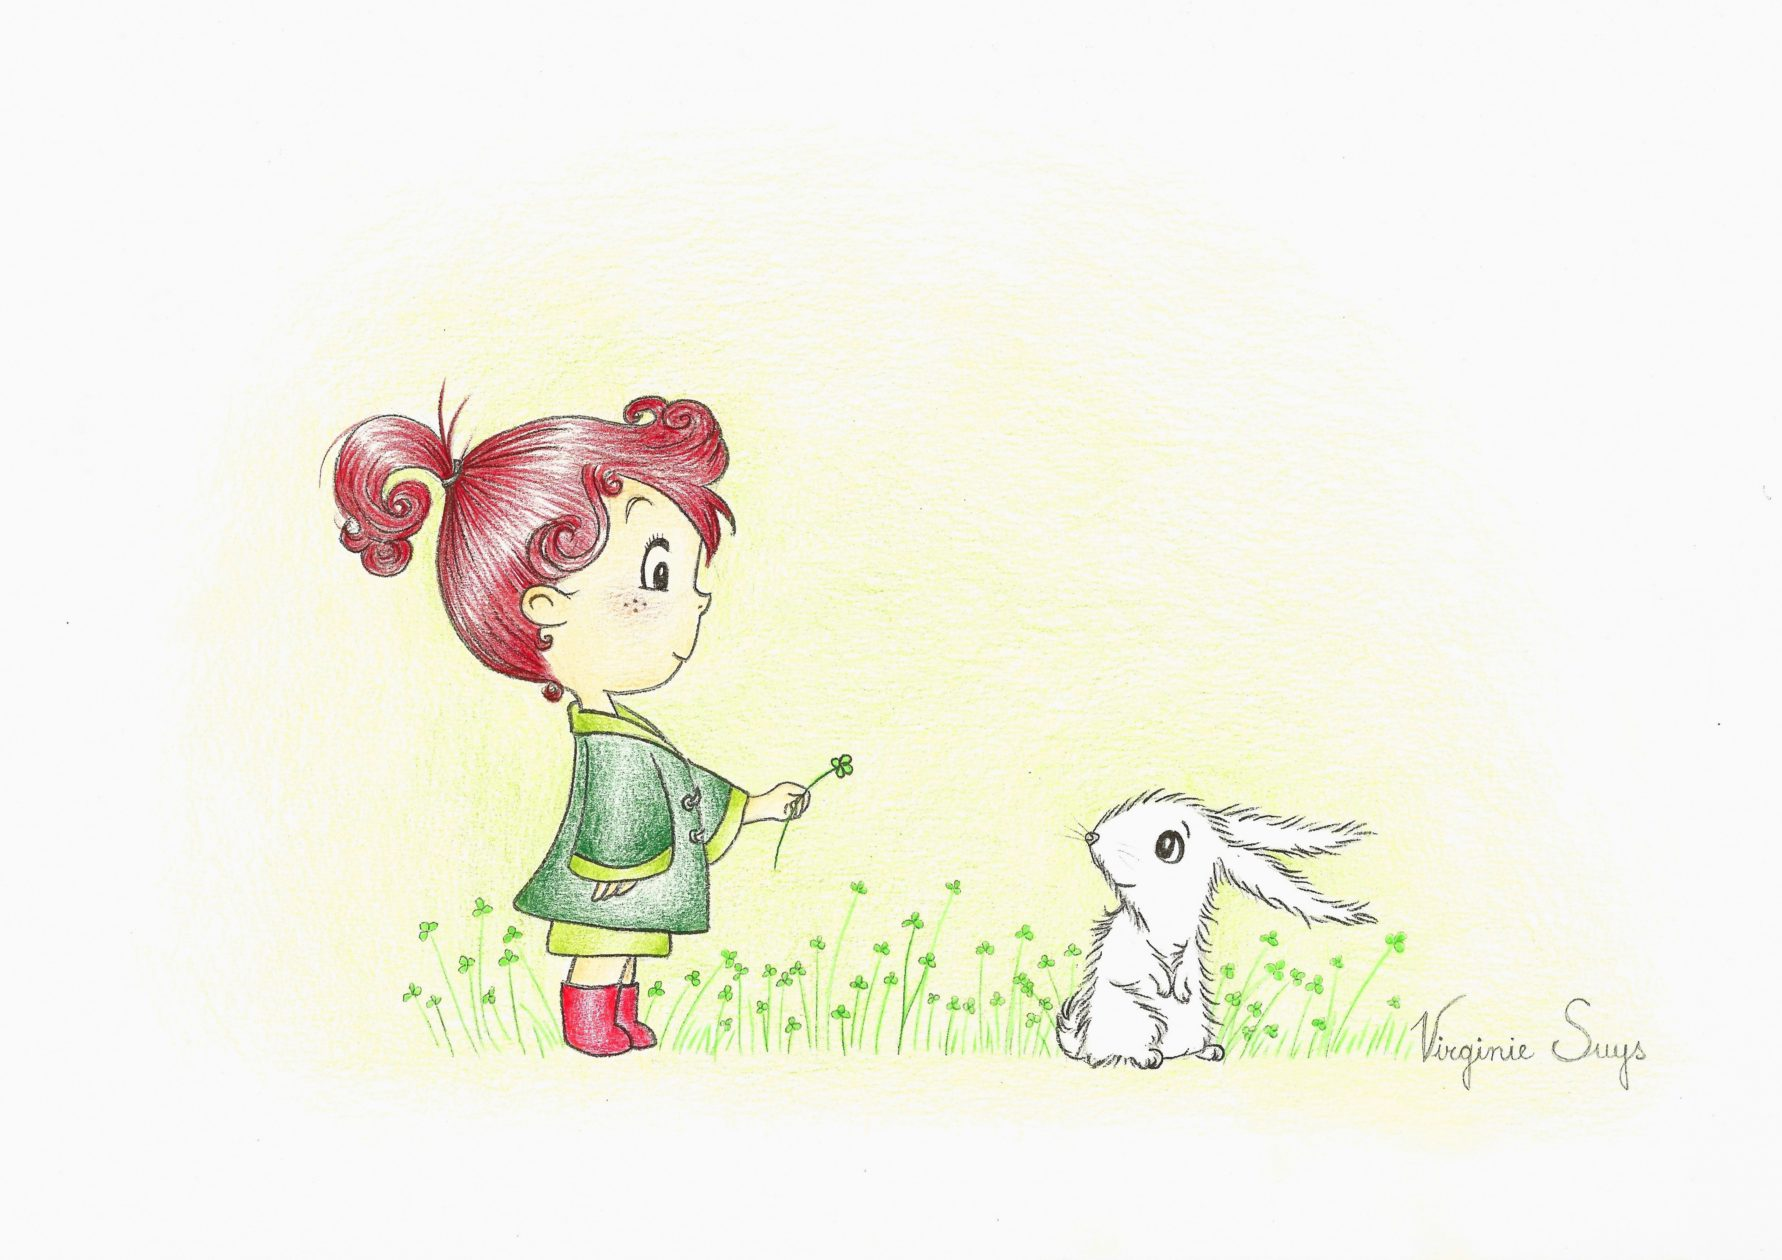 Virginie Suys Girl with rabbit in red & green illustration